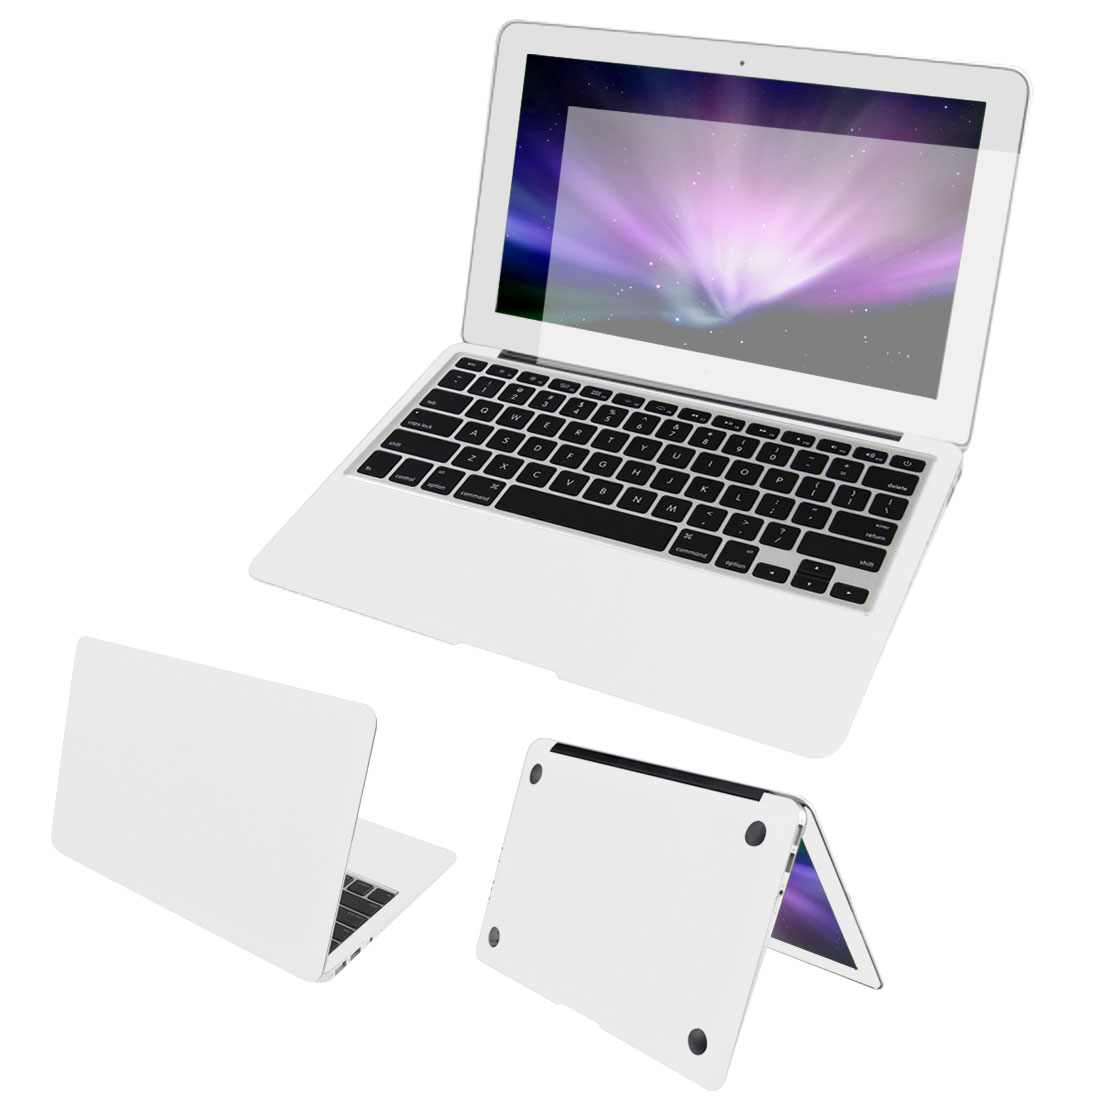 White Body Wrap Protector Decal Skin Screen Guard Dust Connector for Macbook Air 11""